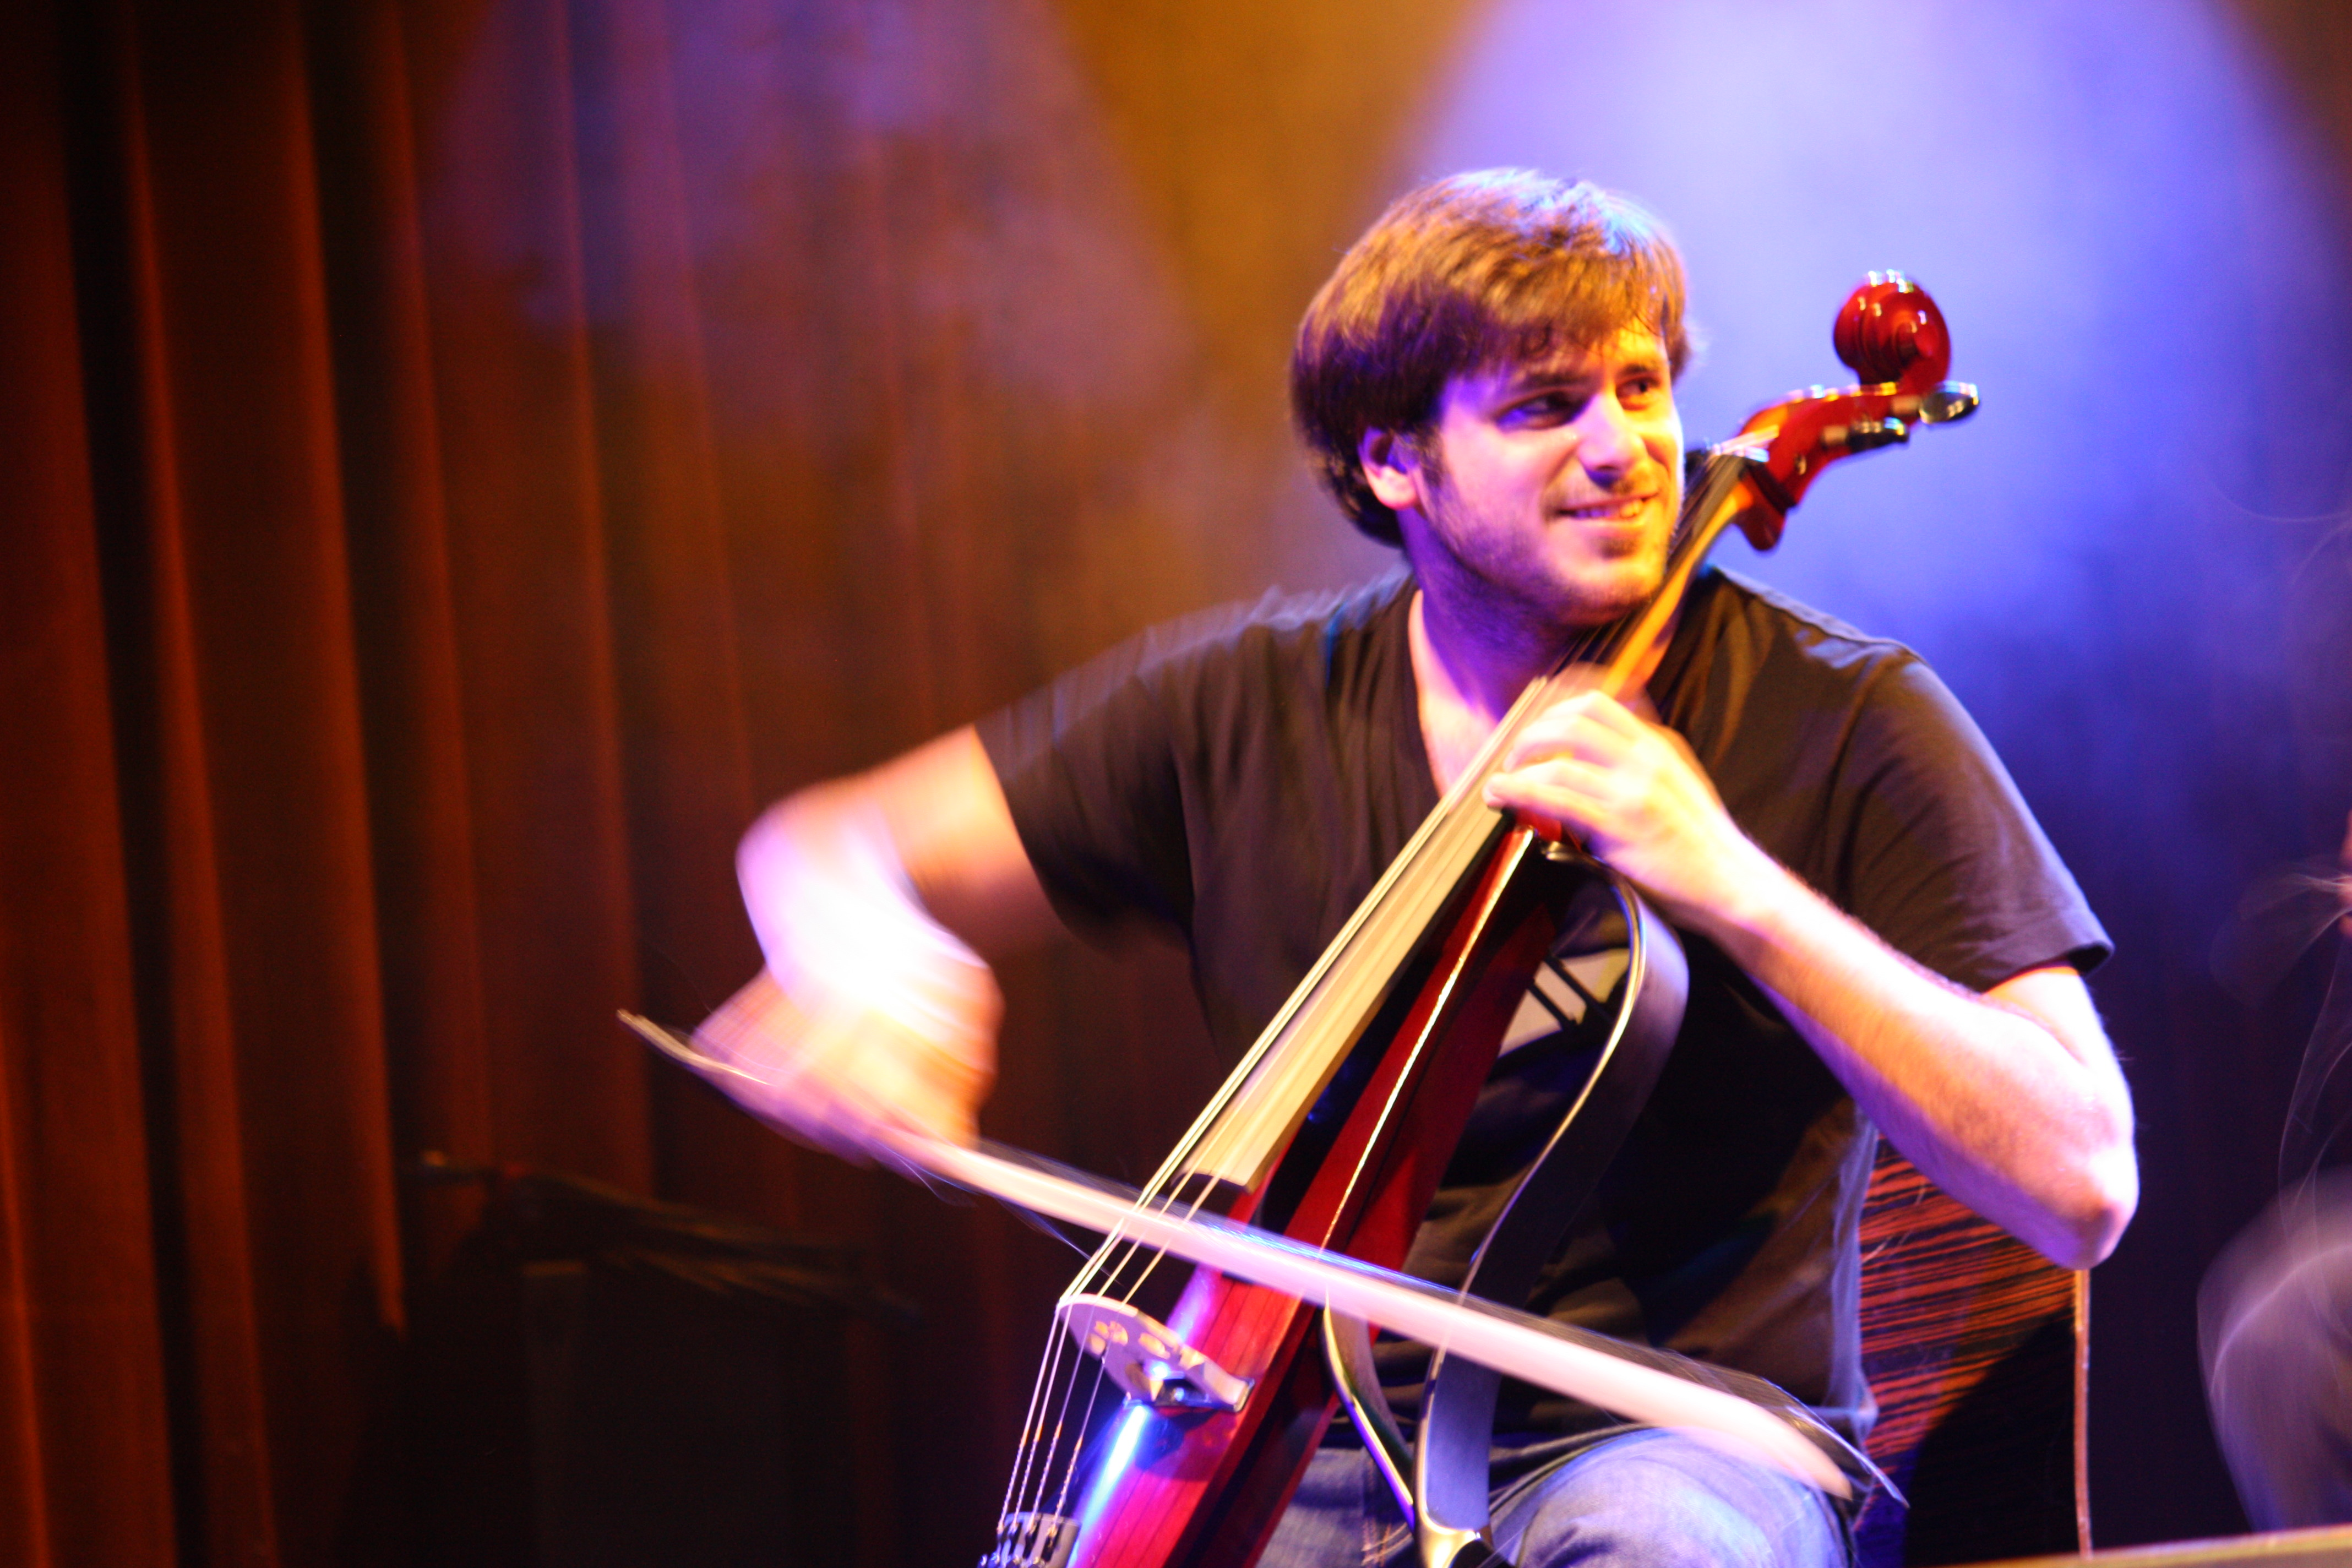 2cellos Live At Highline Ballroom Manta Ray Pictures Guardian Hiro Oxford Ss Shirt In Dusty Blue Biru Muda S 2cello6